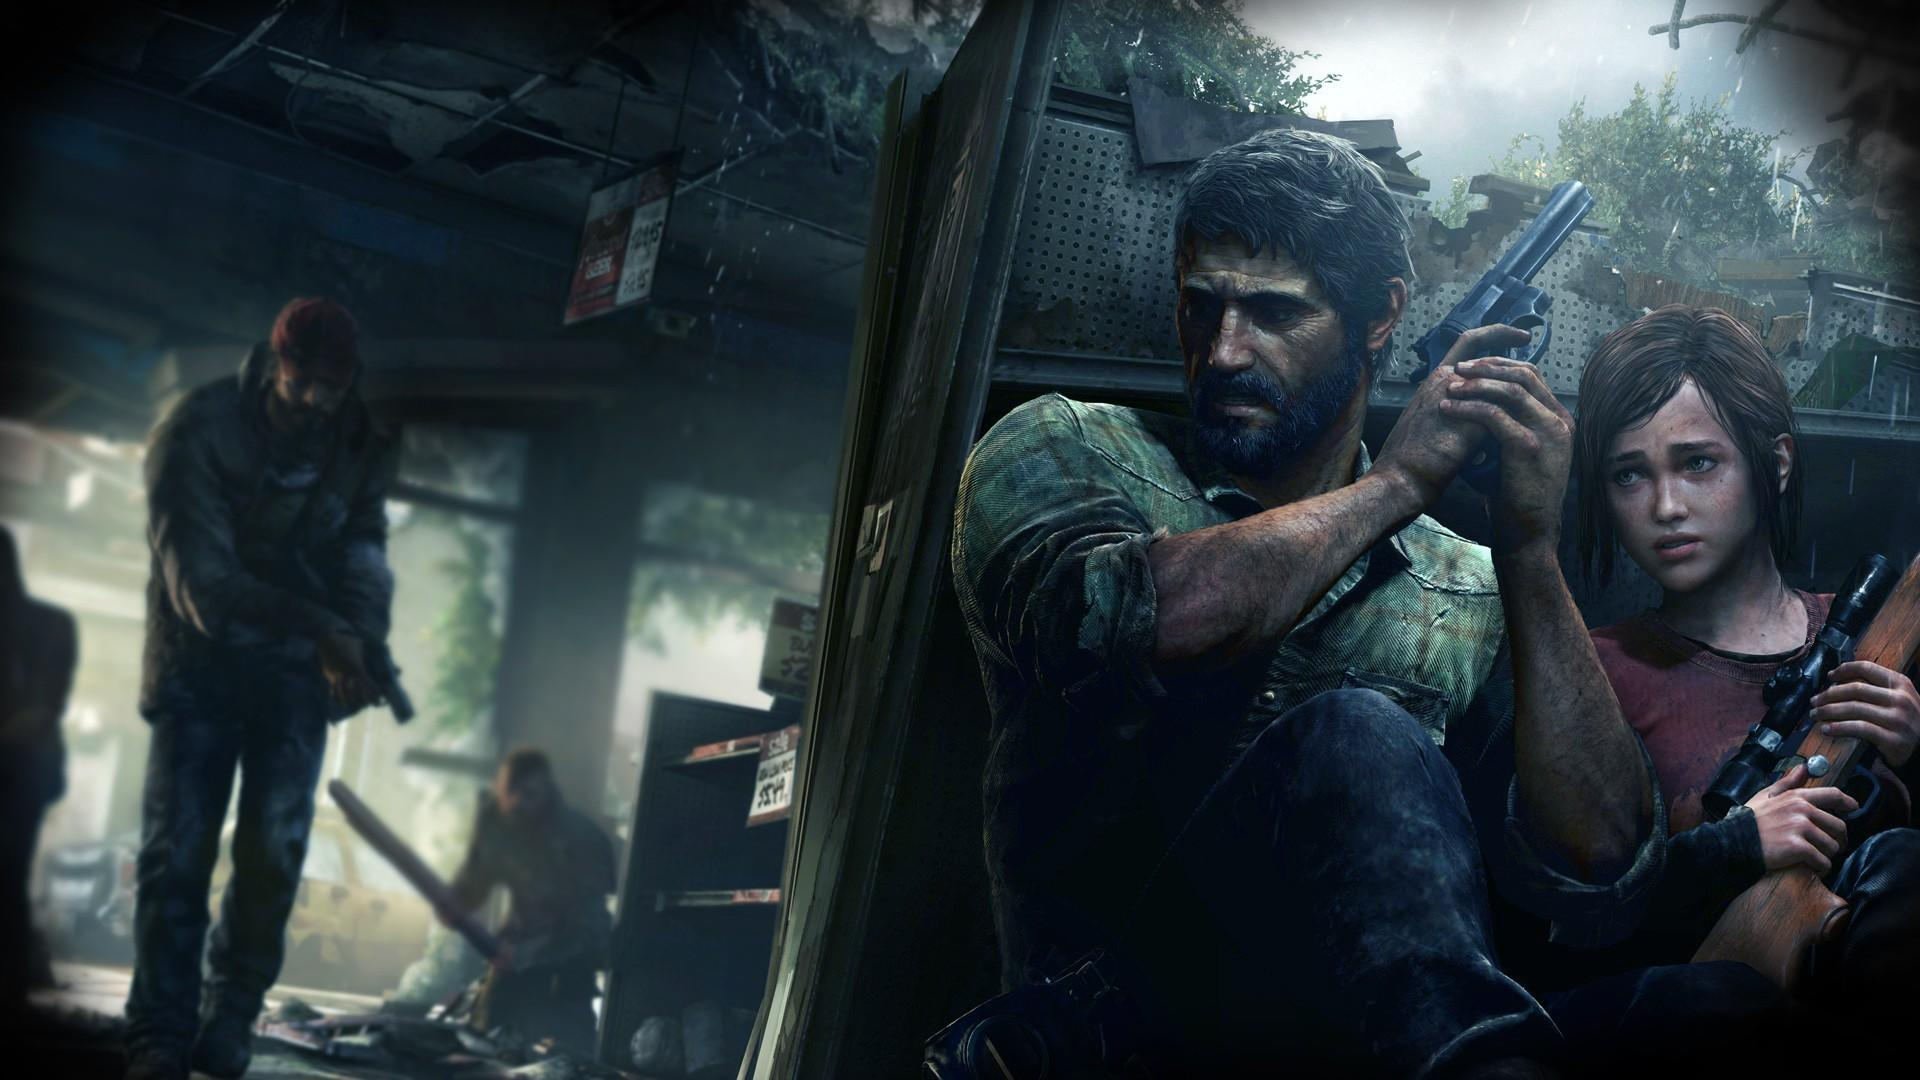 The Last of Us Fan Cinematic Cut Gives You Just the Story